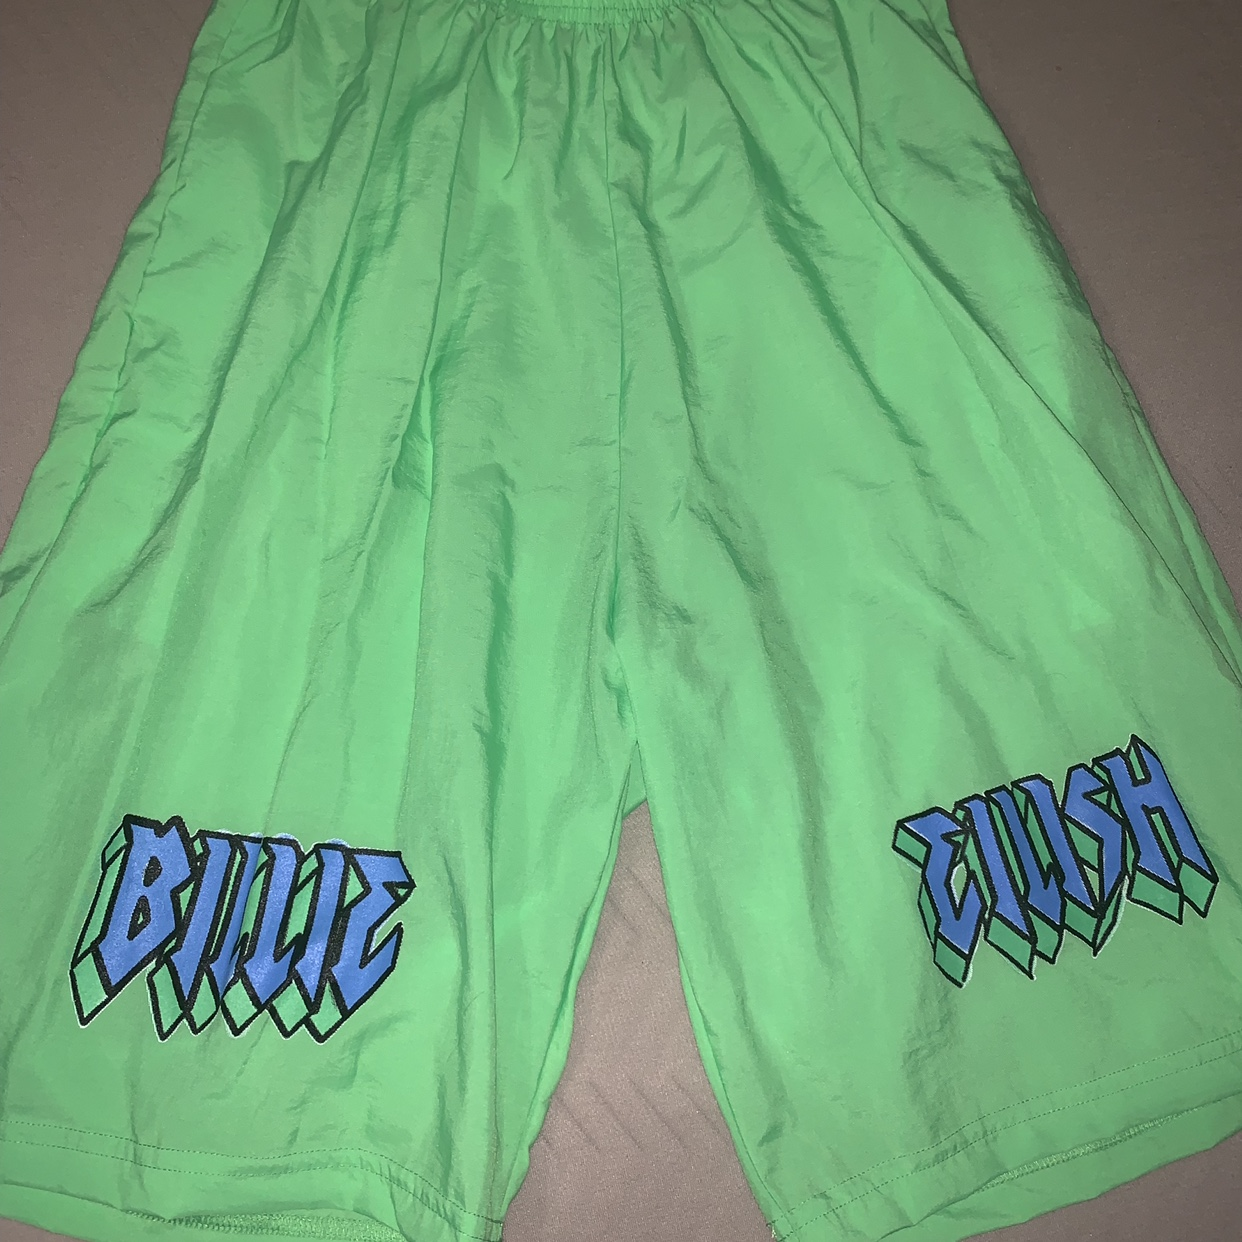 Billie Eilish Green Merch Shorts Sold On Her Depop